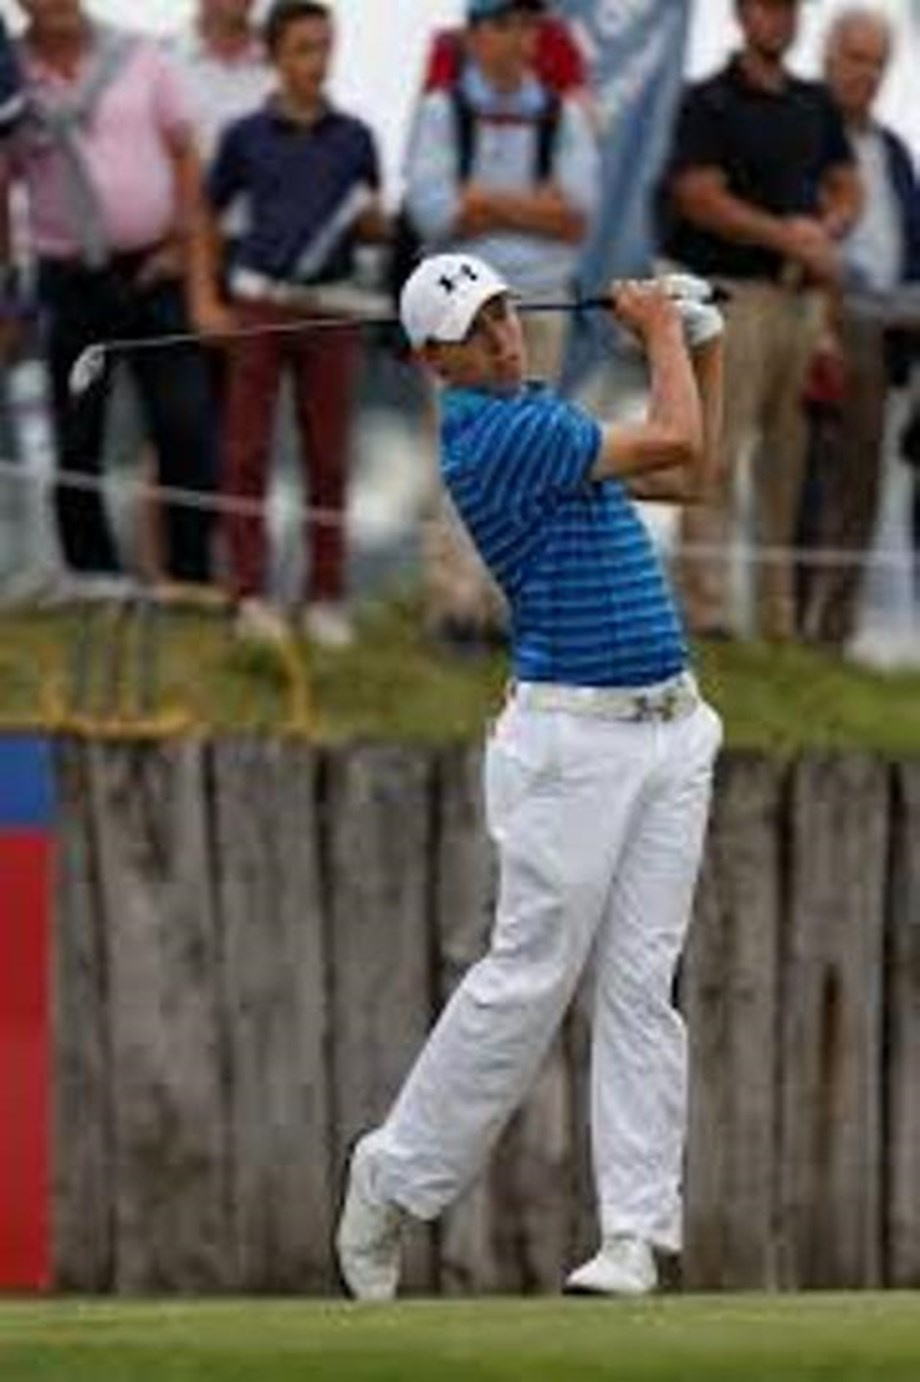 Golf-Fitzpatrick retains one-shot lead at Italian Open